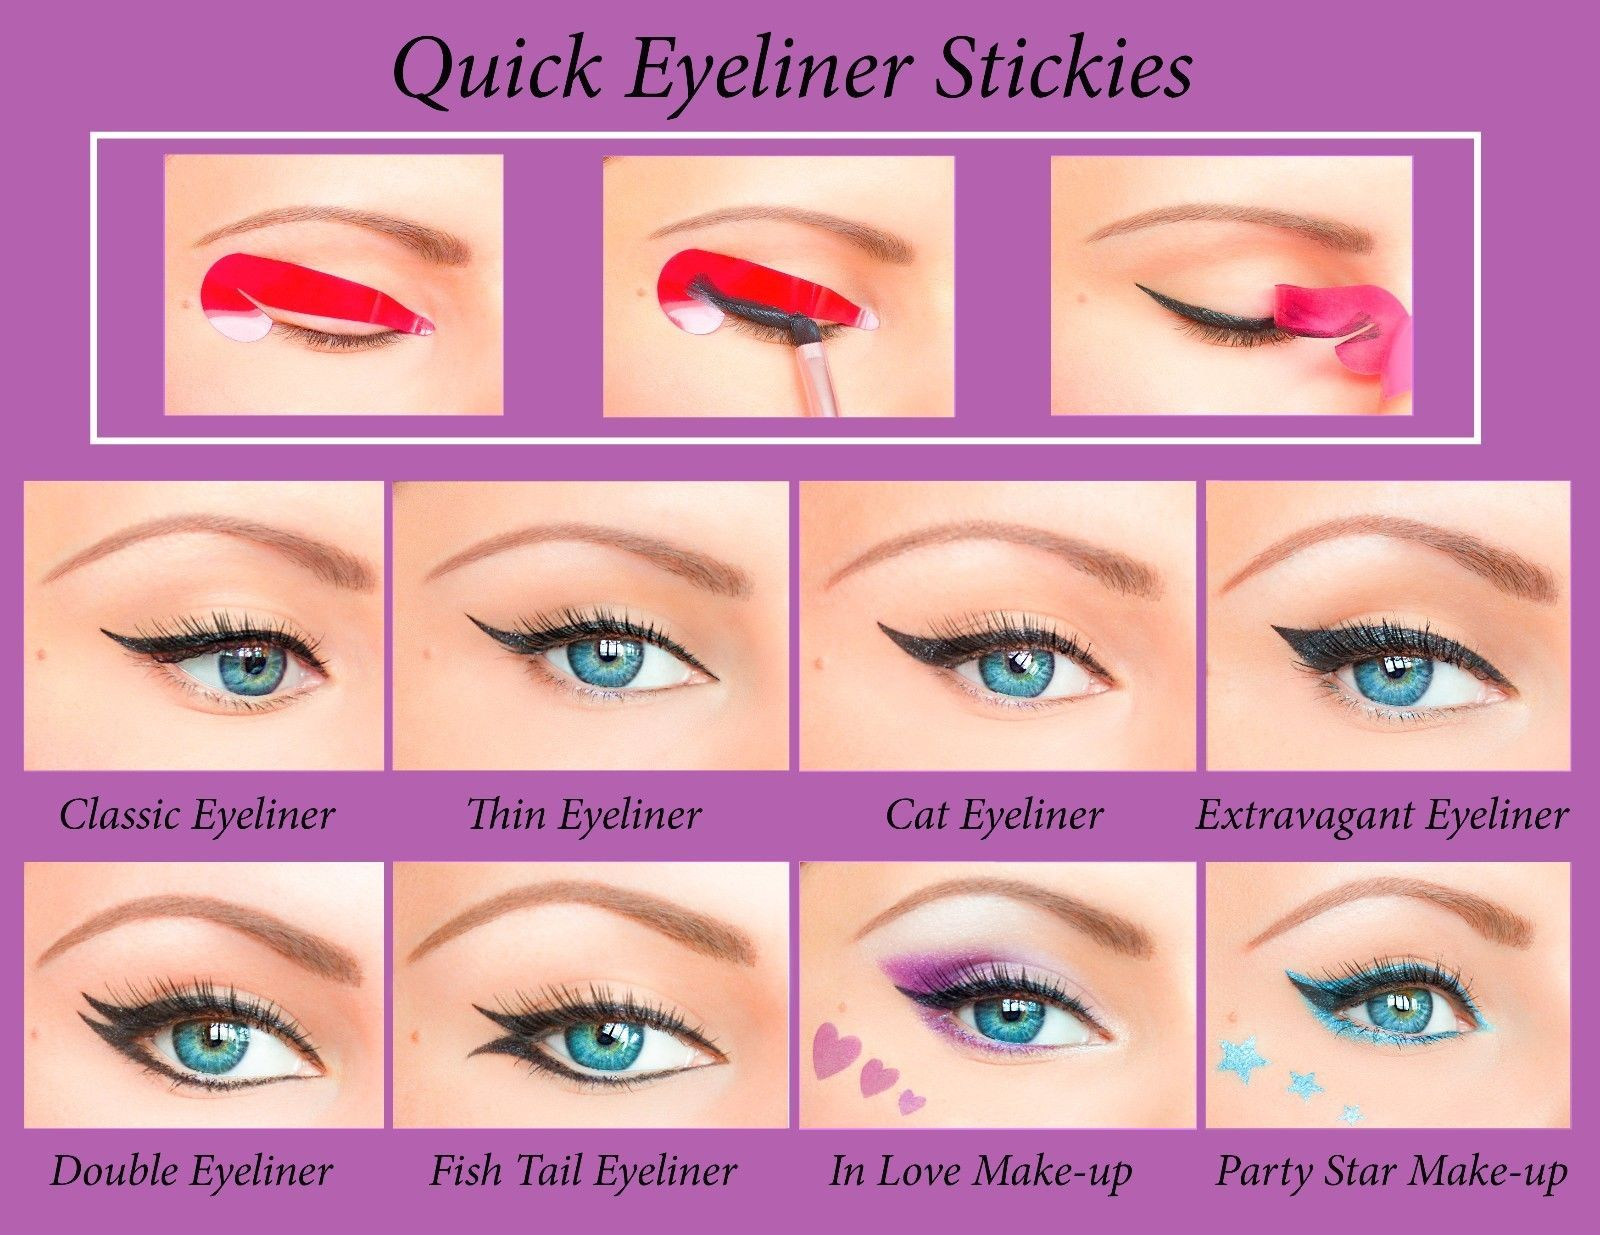 Quick Eyeliner Stickies Stencils Cosmetic Eye Makeup Tool  Free Shipping NEW US1